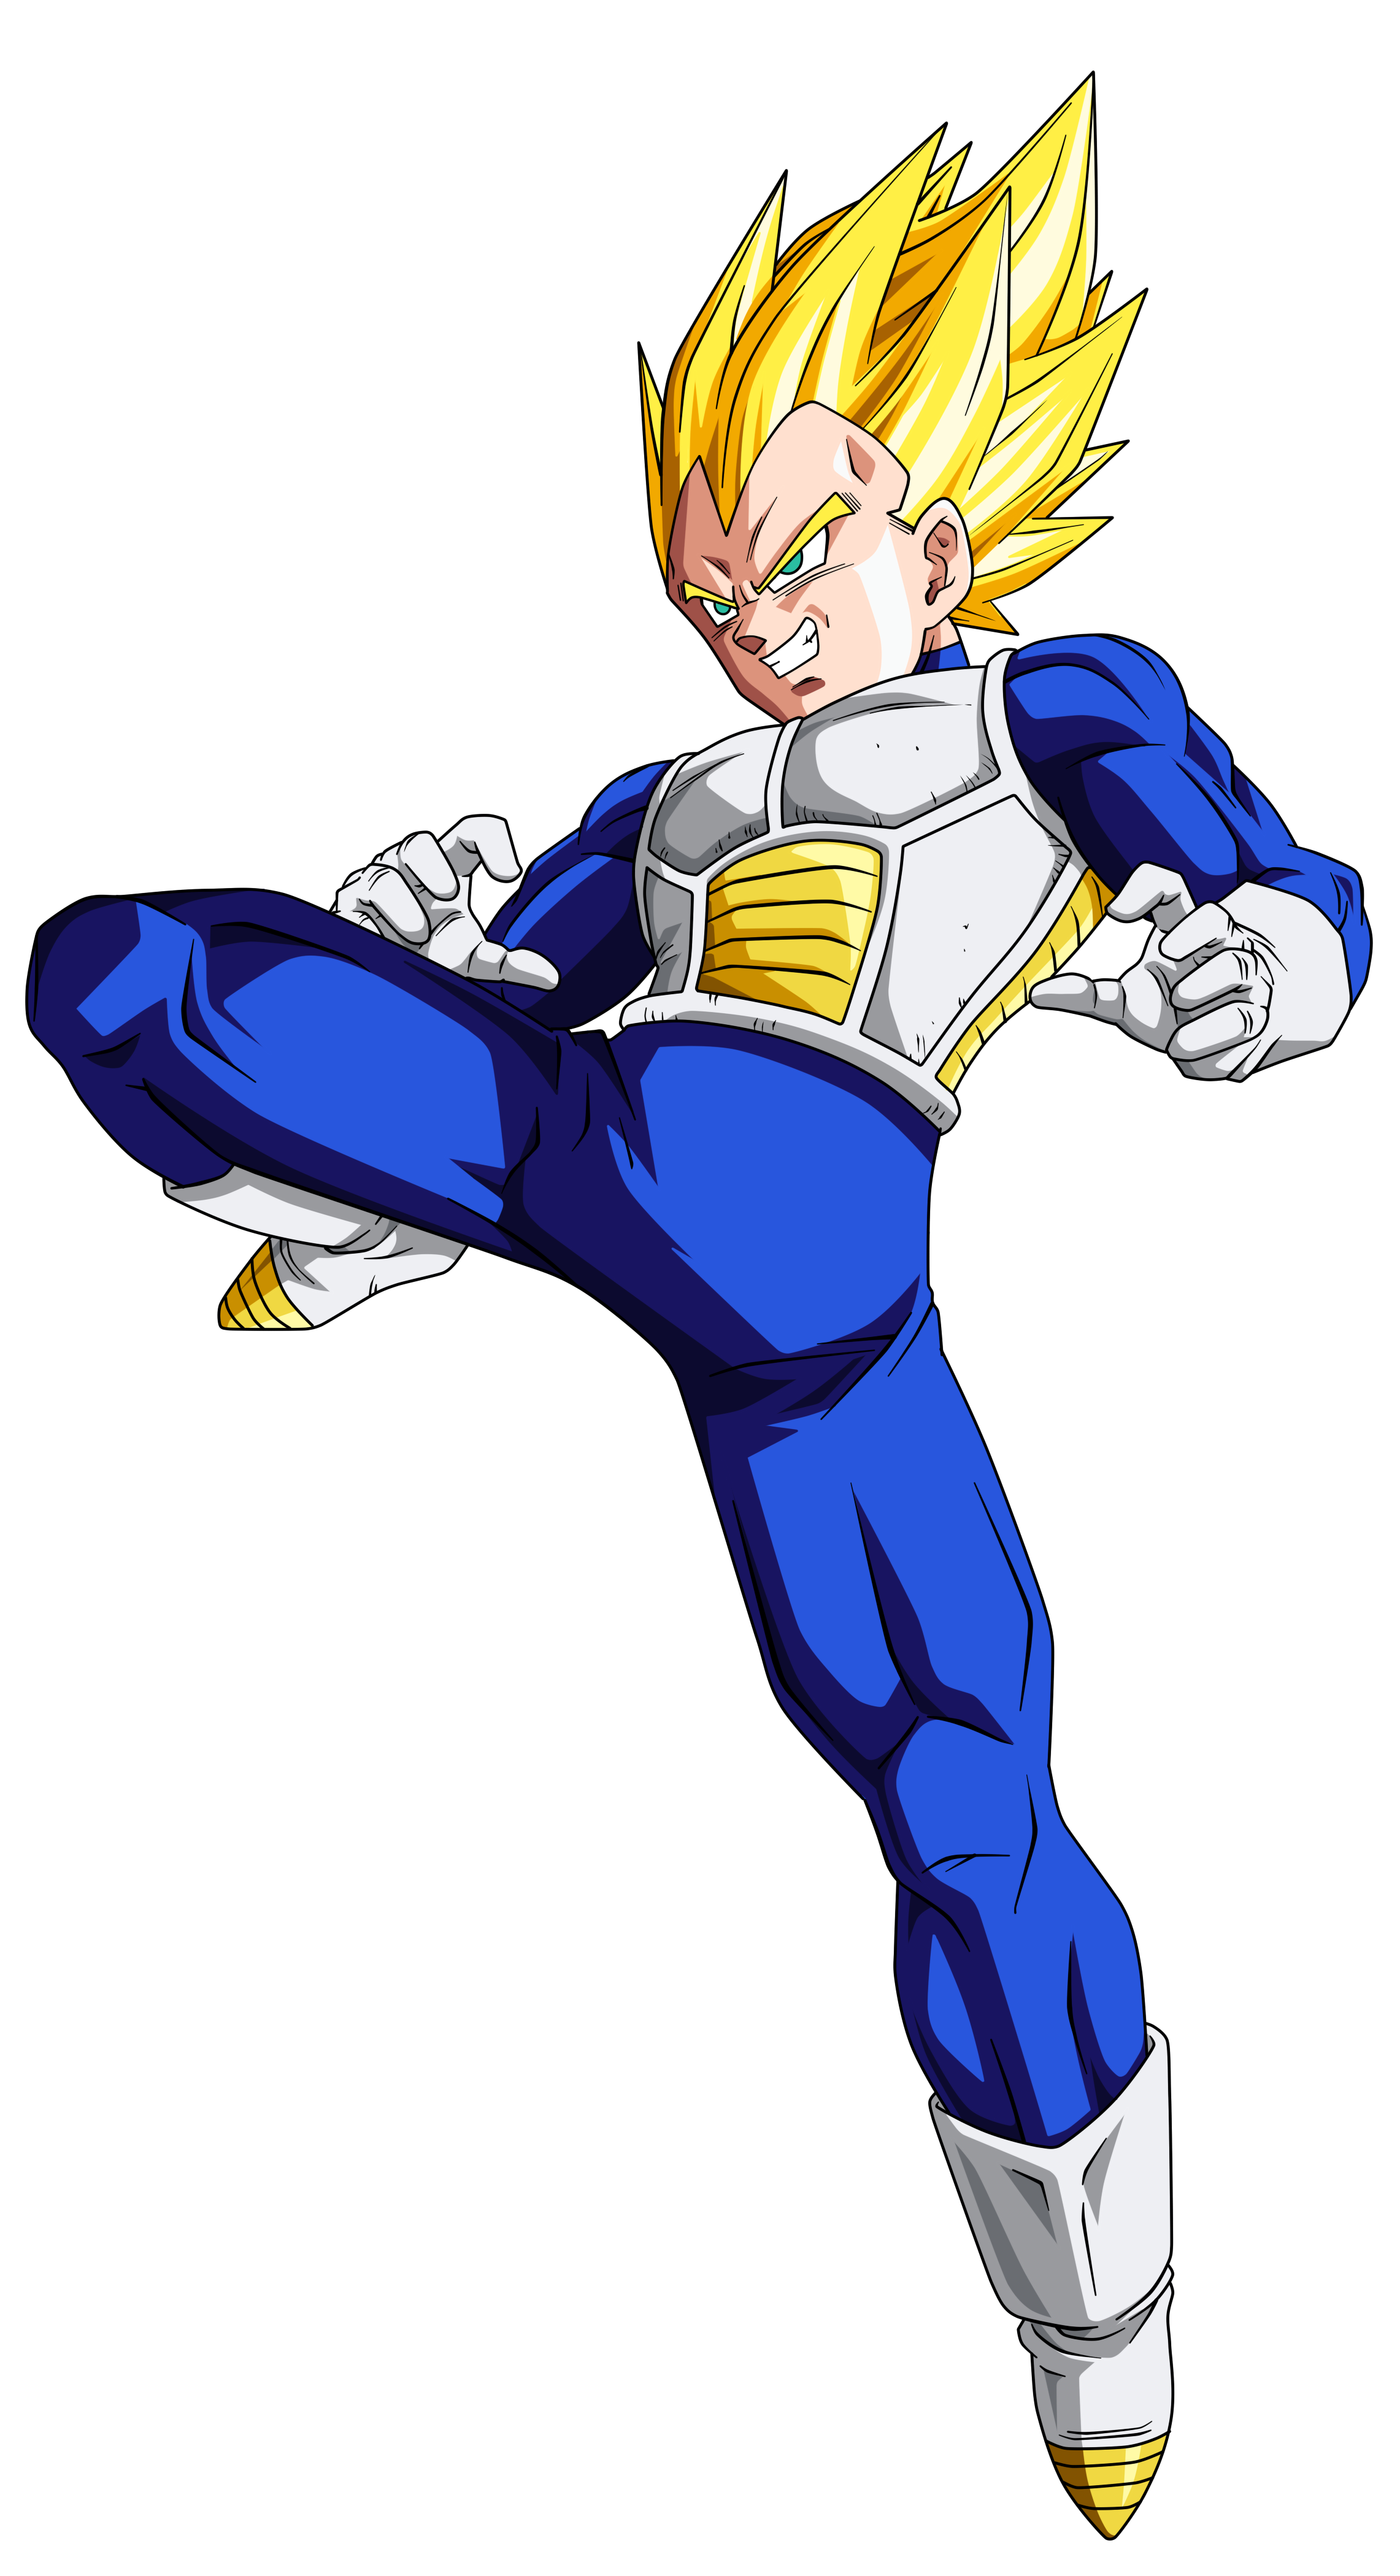 Ssj vegeta png. Image character stats and